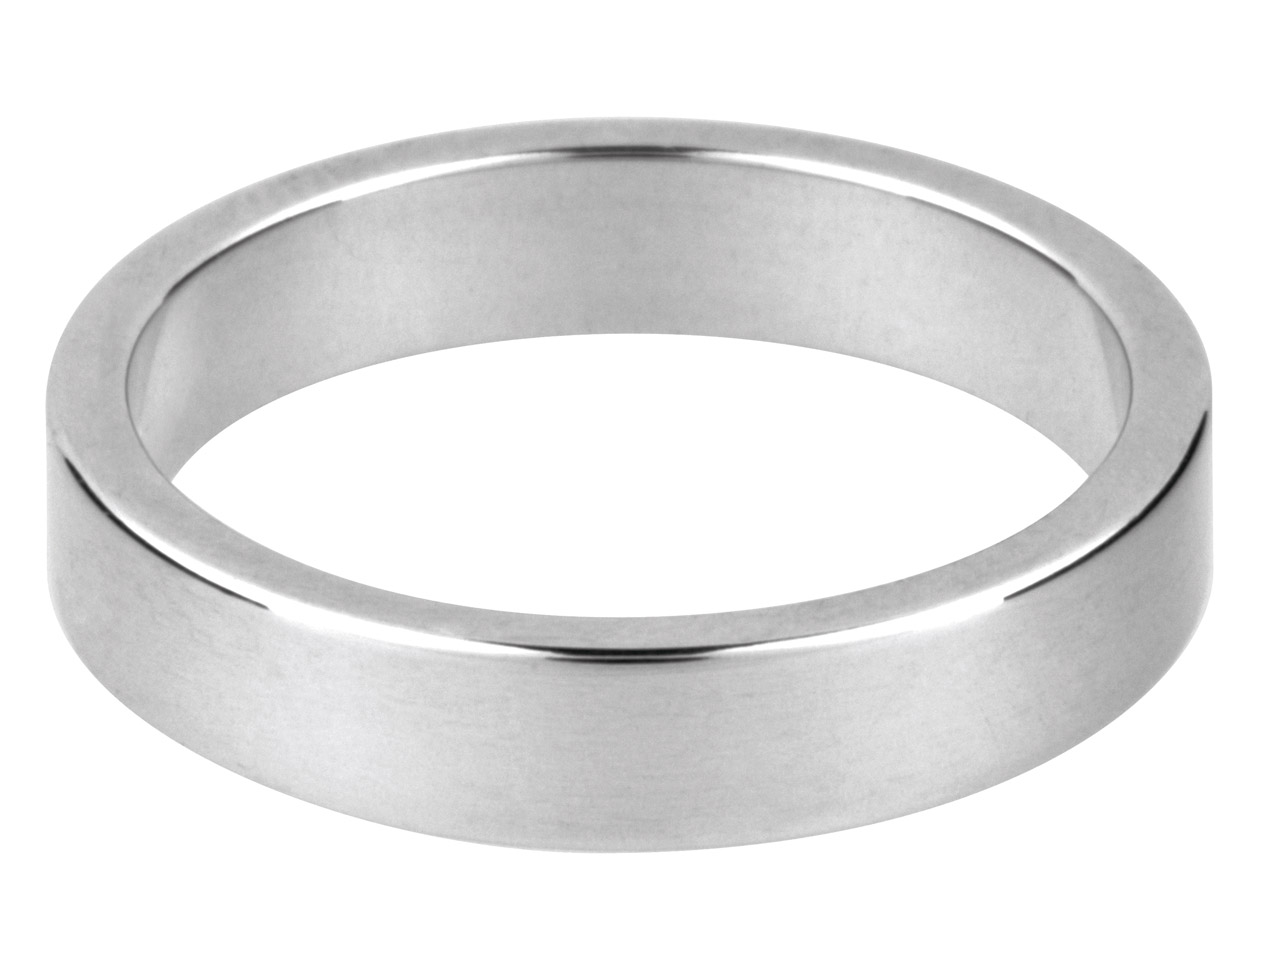 Platinum Flat Wedding Ring 2.0mm P  3.6gms Heavy Weight Hallmarked Wall Thickness 1.30mm